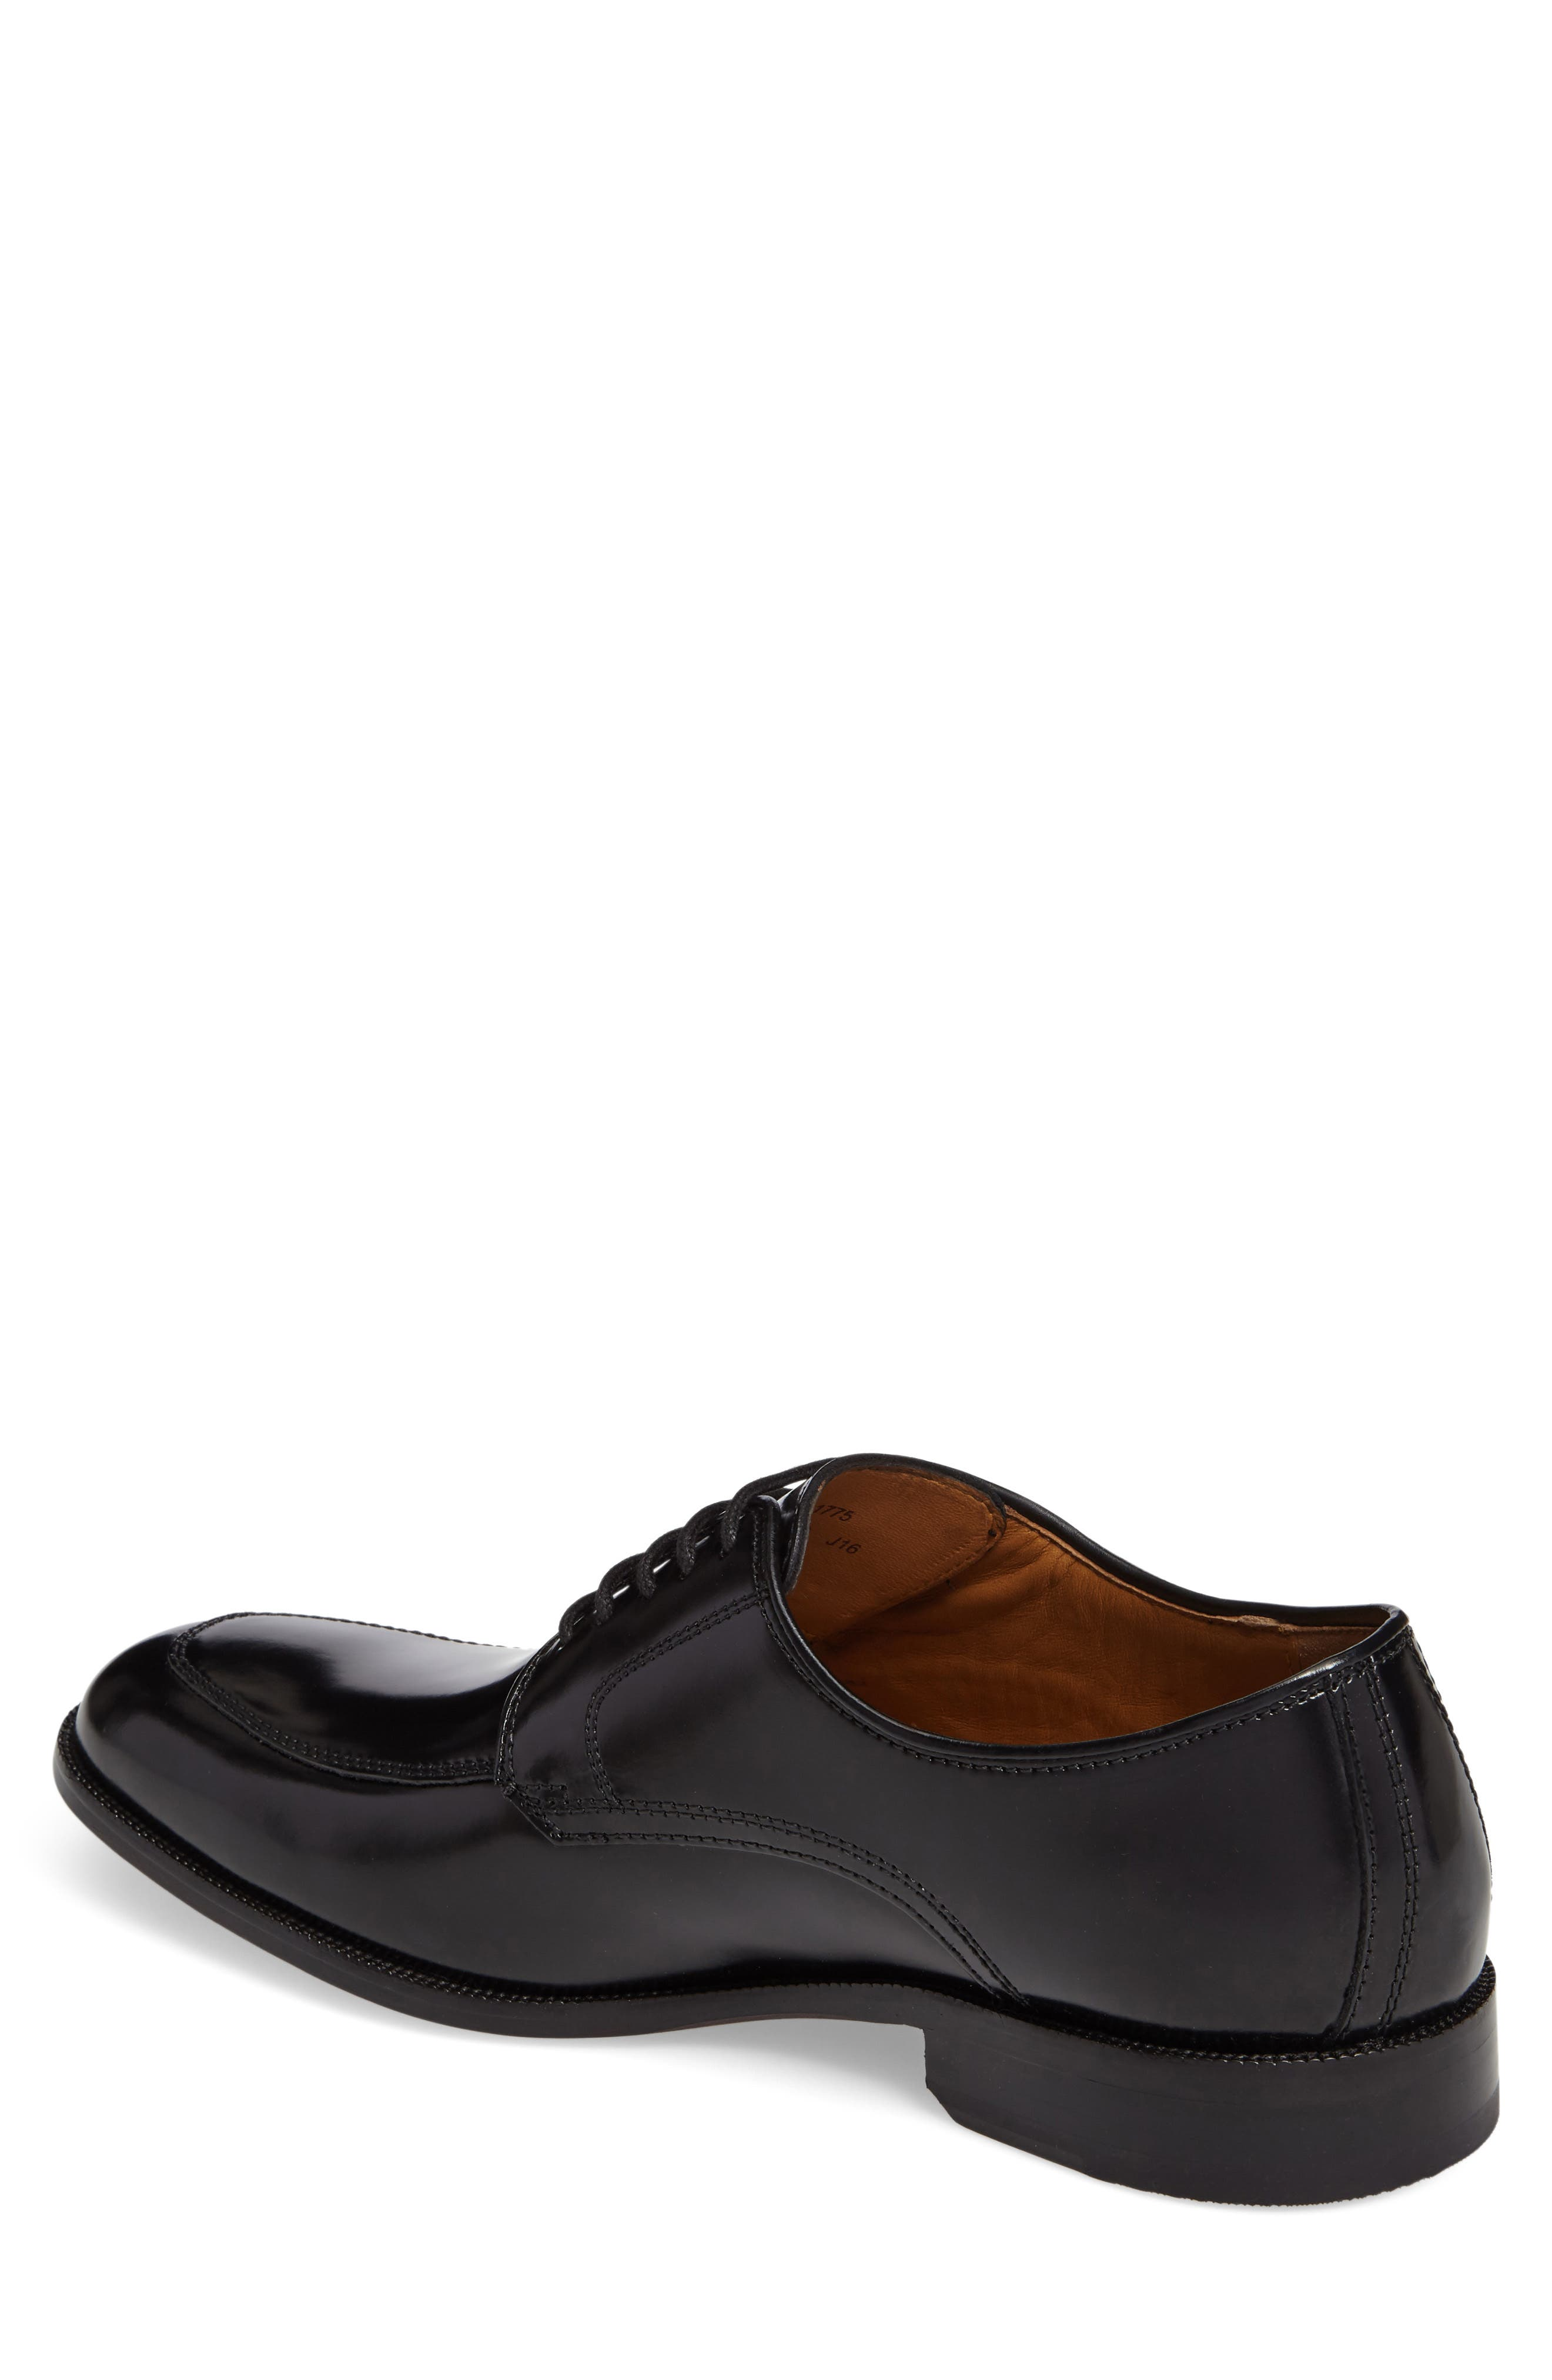 Bradford Apron-Toe Oxford,                             Alternate thumbnail 2, color,                             BLACK LEATHER